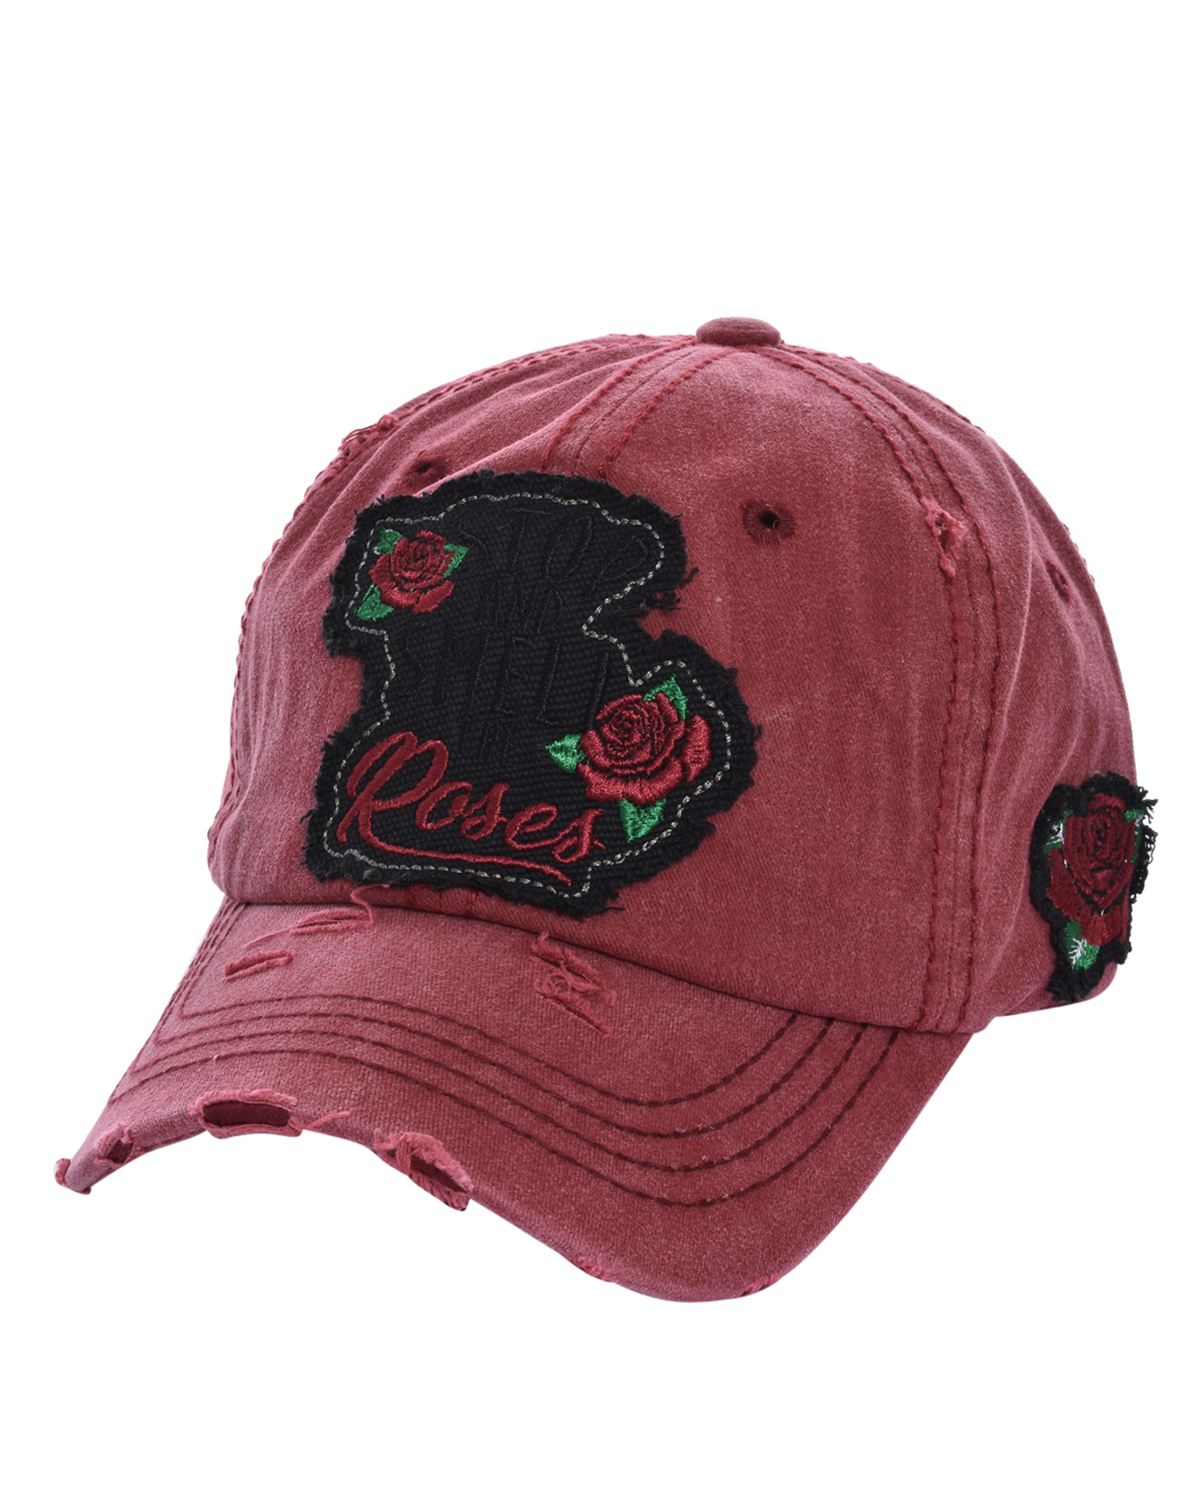 T13ROS01(BUR)-wholesale-baseball-cap-stop-smell-roses-floral-cotton-vintage-torn-embroidered-hook-loop-closure(0).jpg